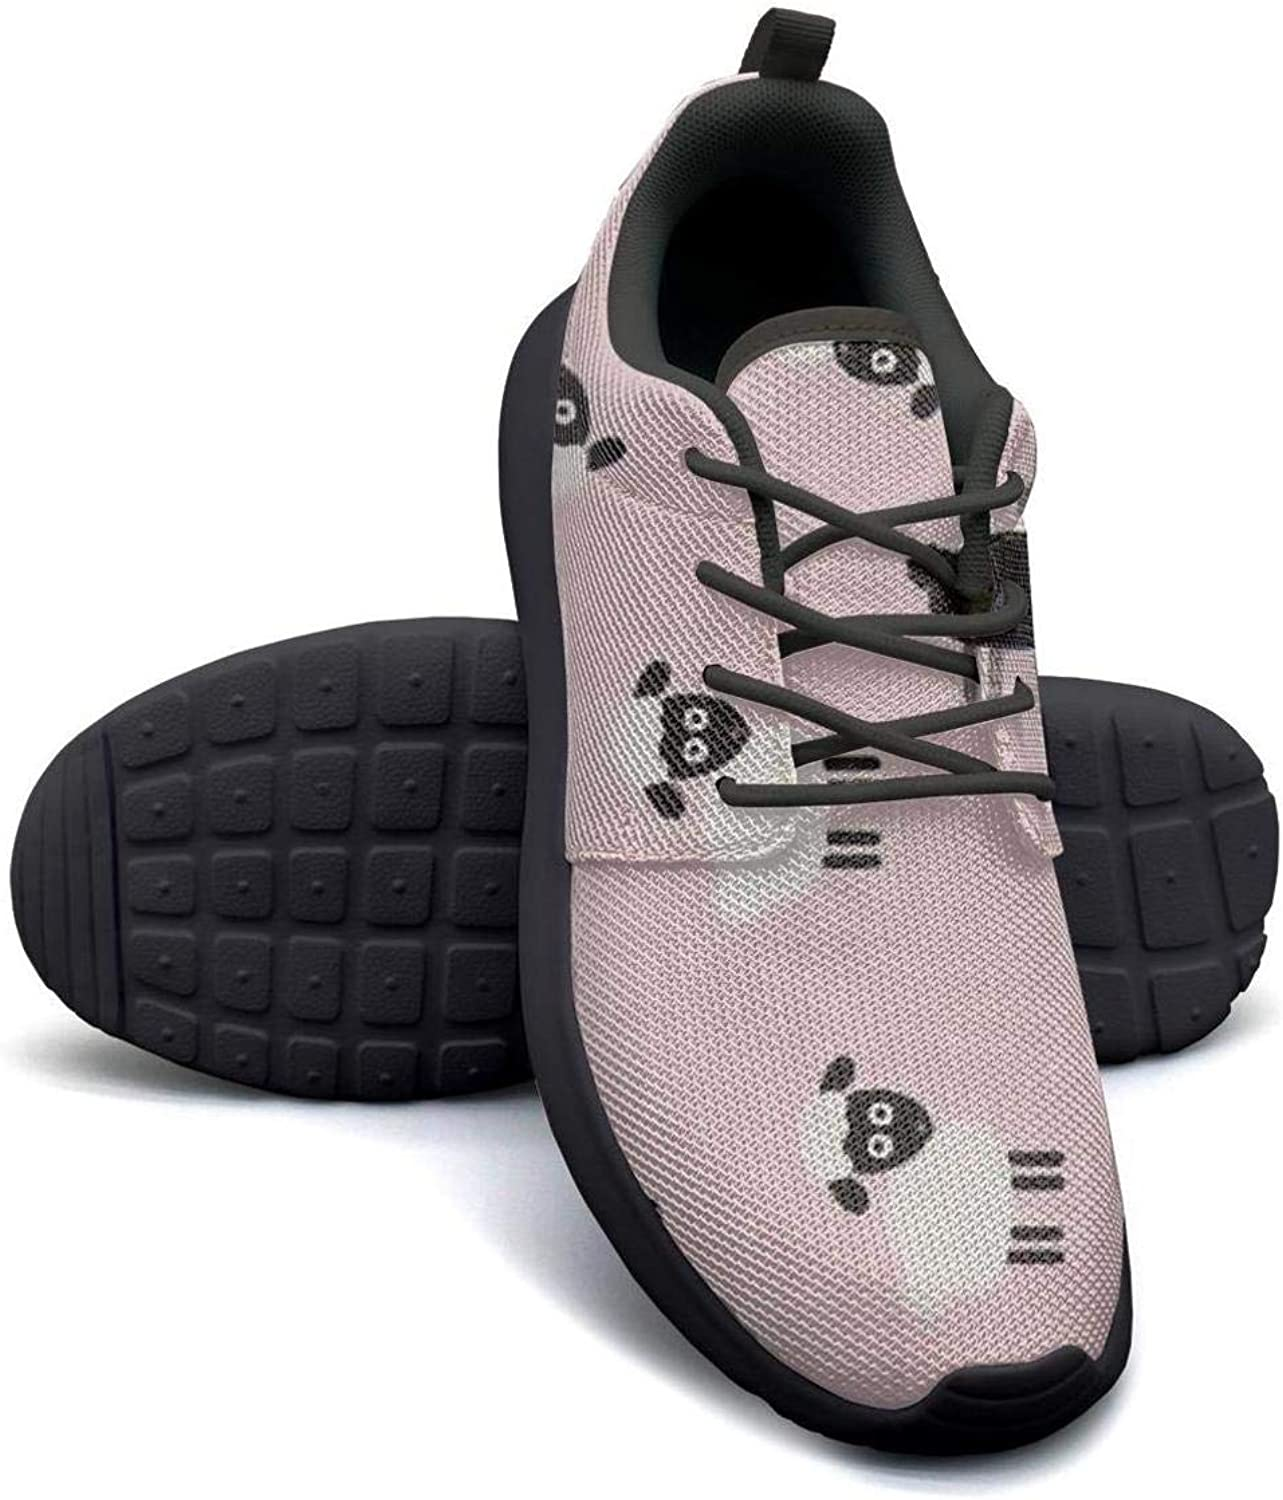 Gjsonmv Pink Minis Sheep mesh Lightweight shoes for Women Fashion Sports Gym Sneakers shoes